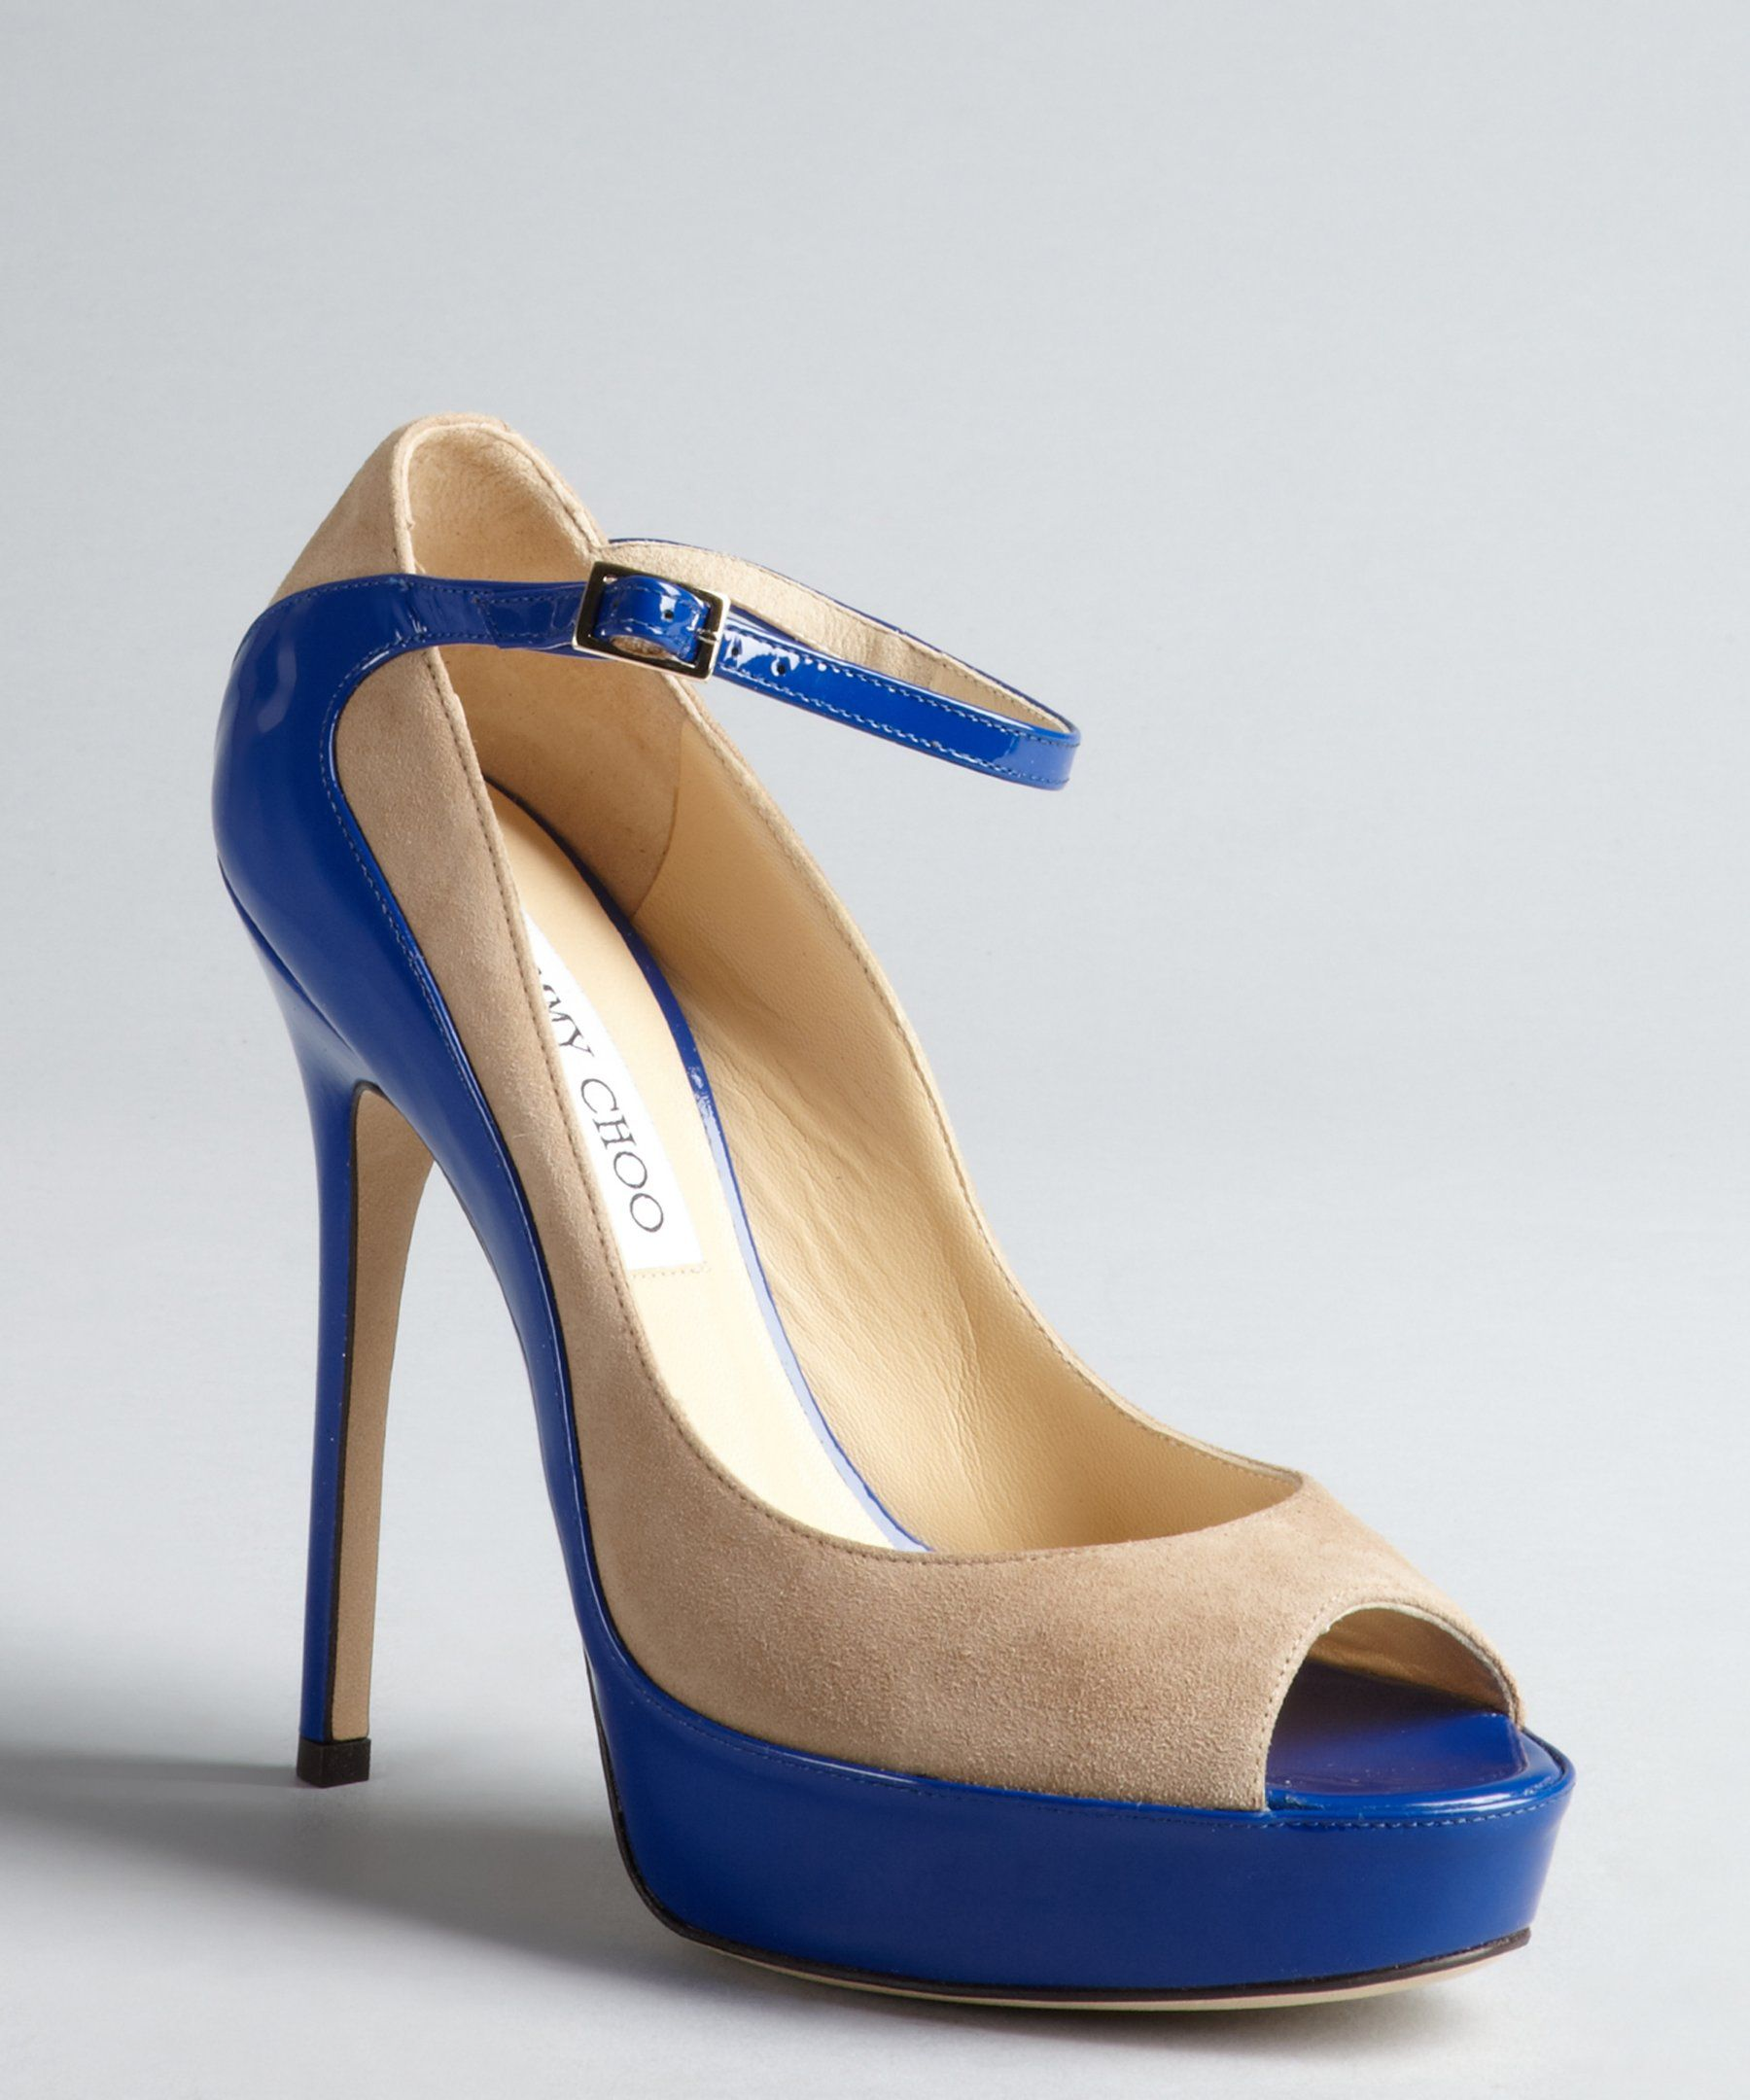 c493de193247 Jimmy Choo nude suede and blue patent leather peep toe  Tami  pumps ...